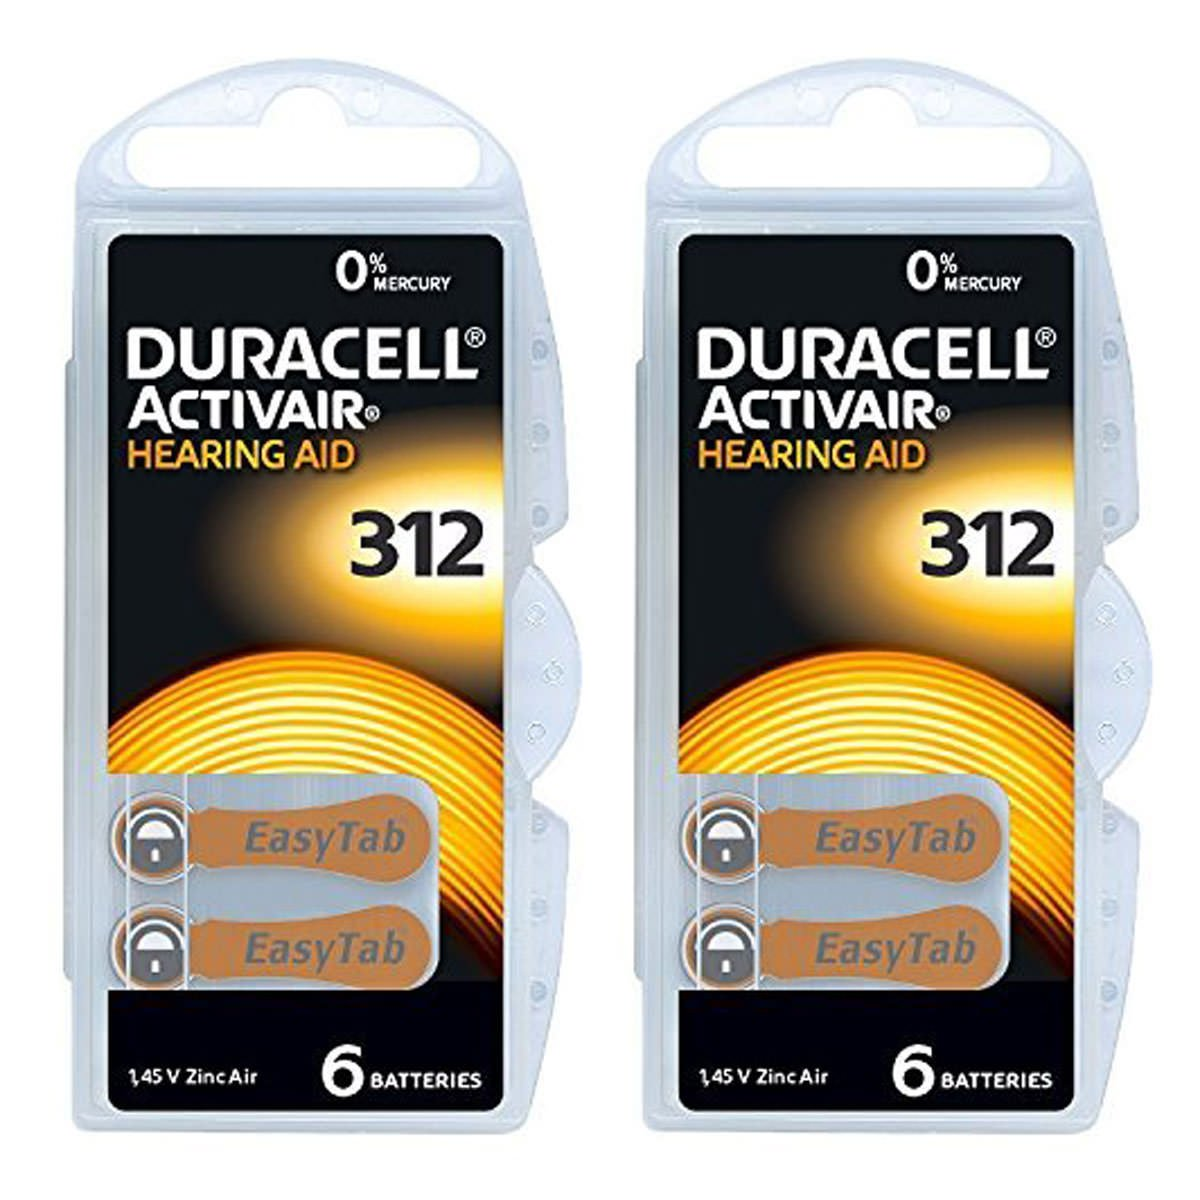 image regarding Duracell Coupons Printable referred to as Duracell Listening to Assistance Batteries Measurement 312 pack 60 batteries